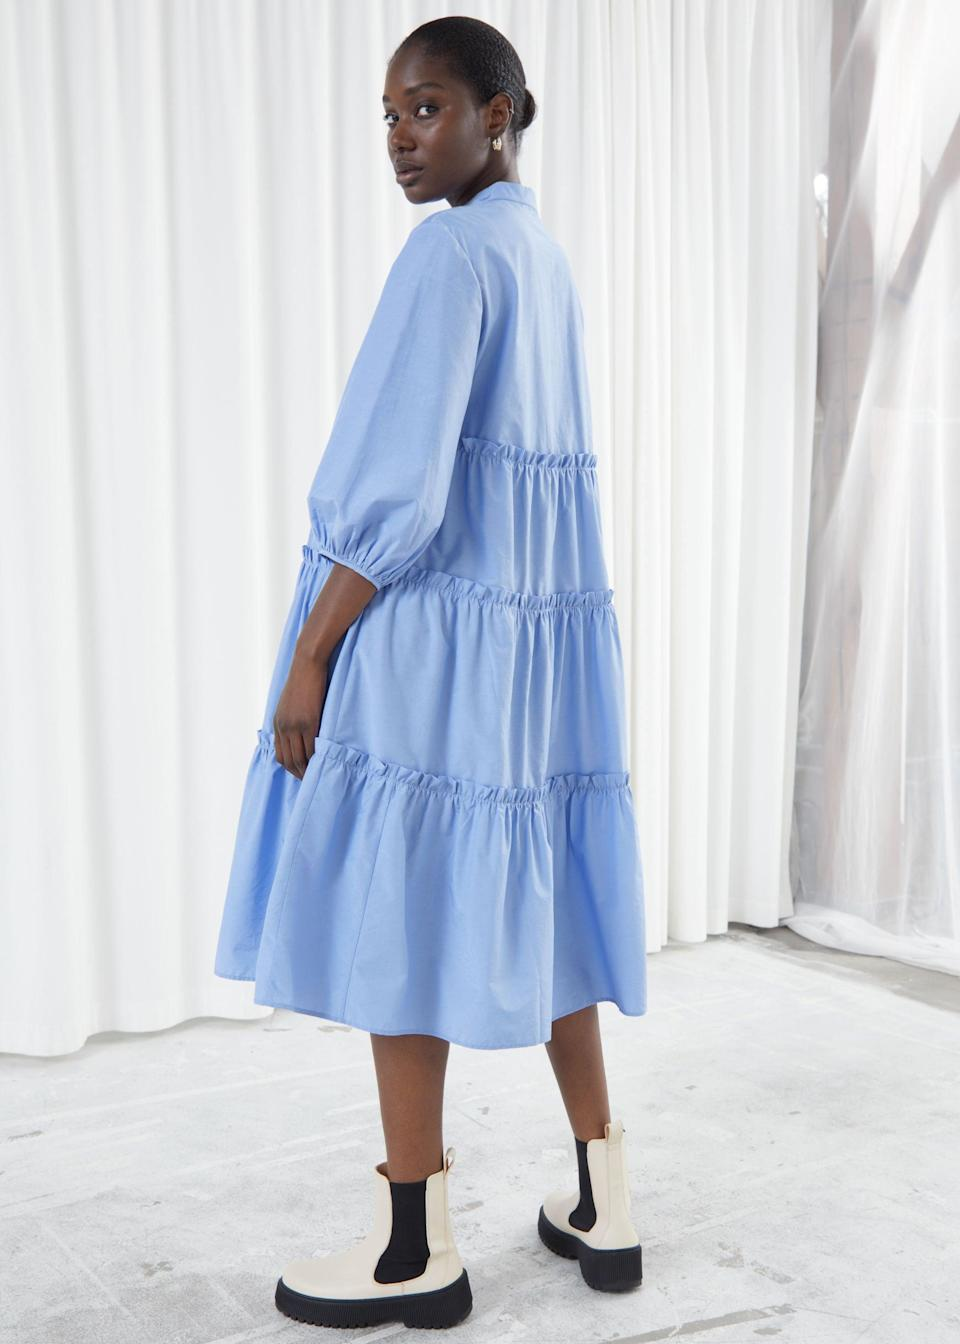 "<br><br><strong>& Other Stories</strong> Voluminous Tiered Puff Sleeve Midi Dress, $, available at <a href=""https://go.skimresources.com/?id=30283X879131&url=https%3A%2F%2Fwww.stories.com%2Fen_usd%2Fclothing%2Fdresses%2Fmidi-dresses%2Fproduct.voluminous-tiered-puff-sleeve-midi-dress-blue.0886121001.html"" rel=""nofollow noopener"" target=""_blank"" data-ylk=""slk:& Other Stories"" class=""link rapid-noclick-resp"">& Other Stories</a>"